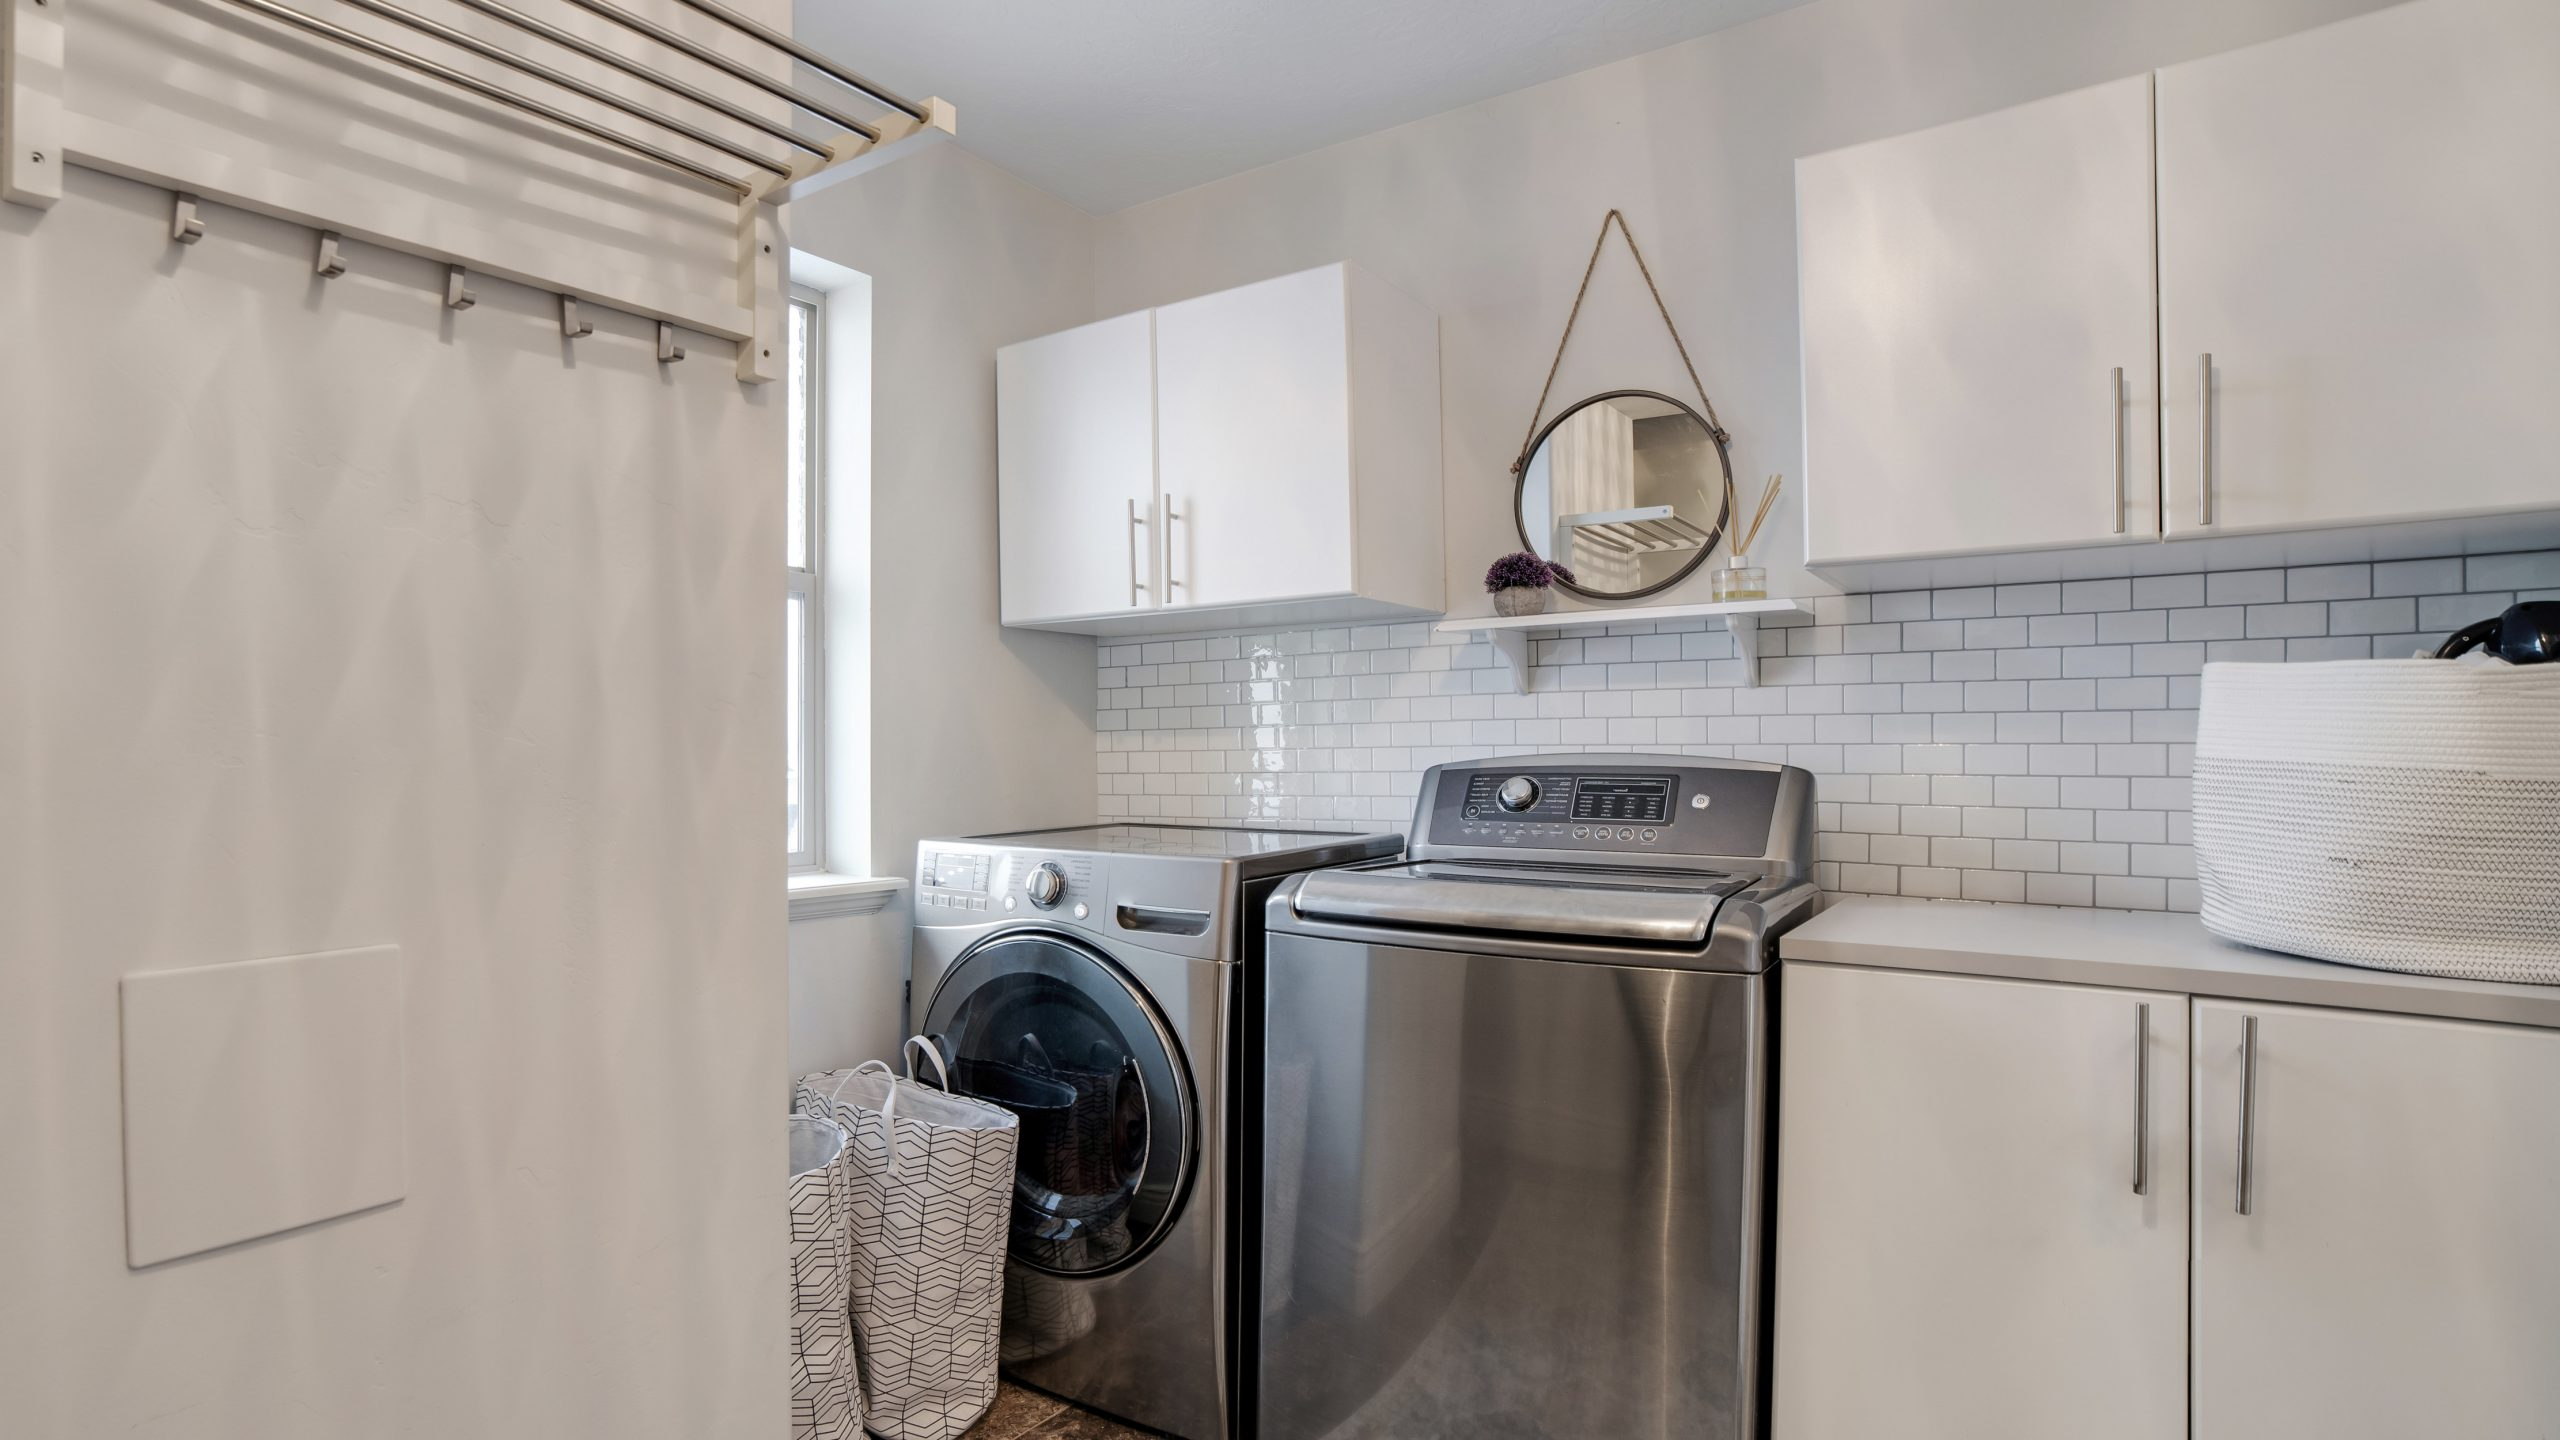 Laundry room interior with cabinets washing machine and dryer against white wall. Window, laundry basket, clothes rod, and tile floor can also be seen inside this room.